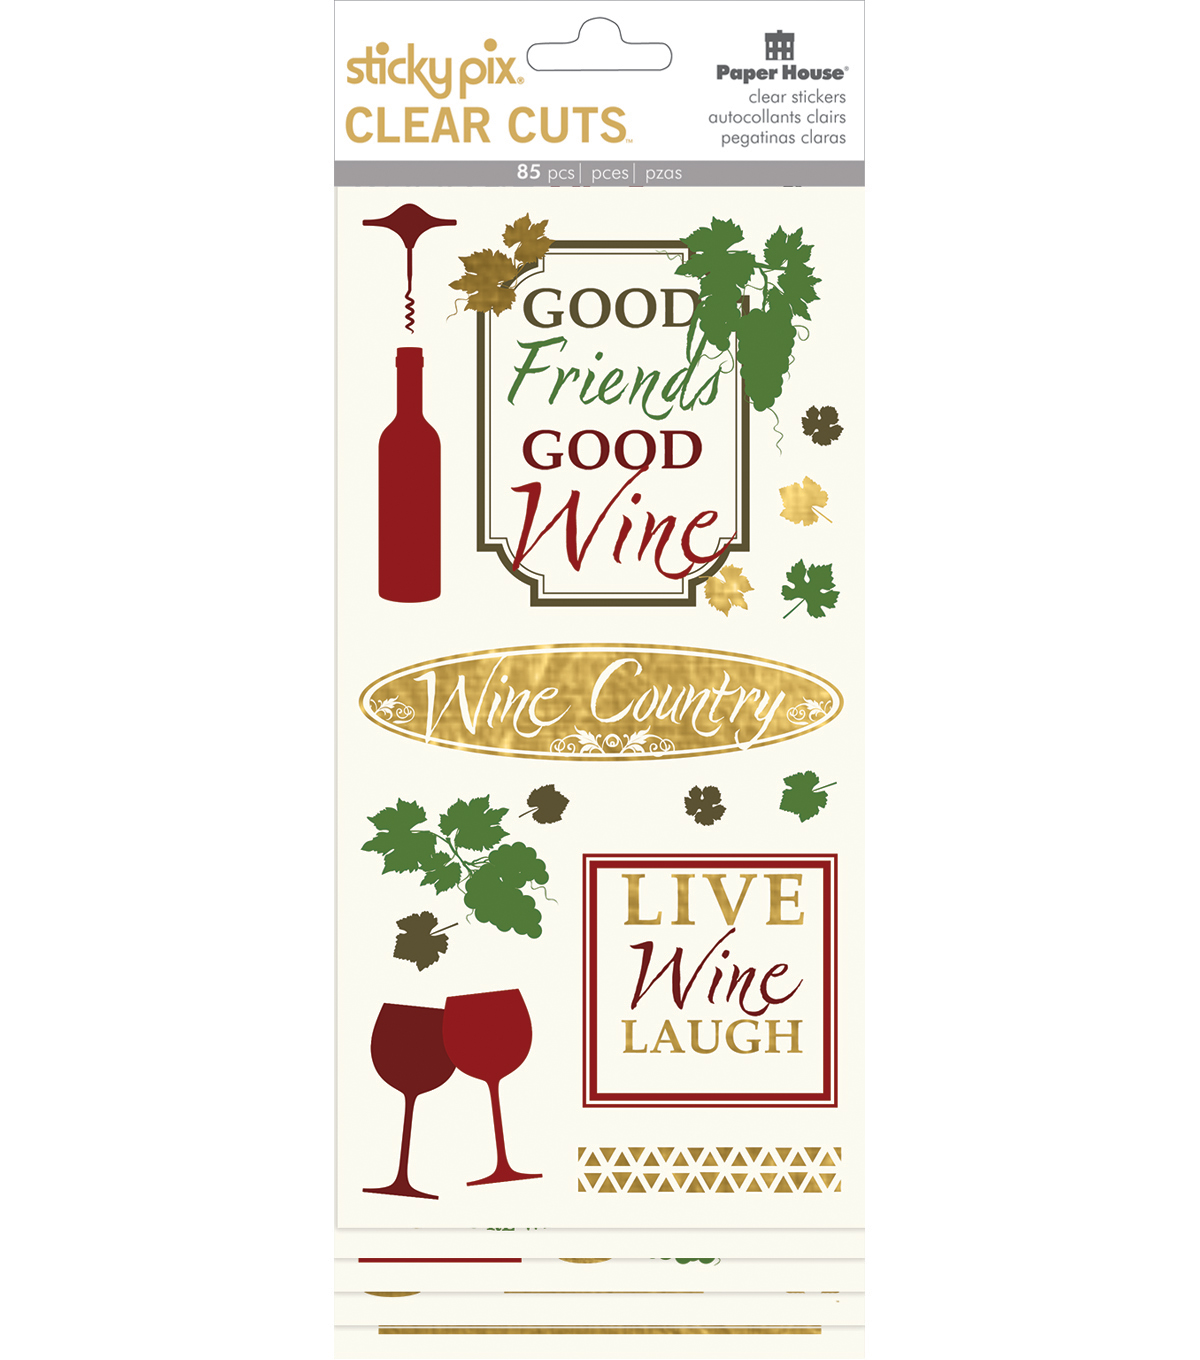 Paper House® Sticky Pix Clear Cuts Pack of 85 Stickers-Wine Country